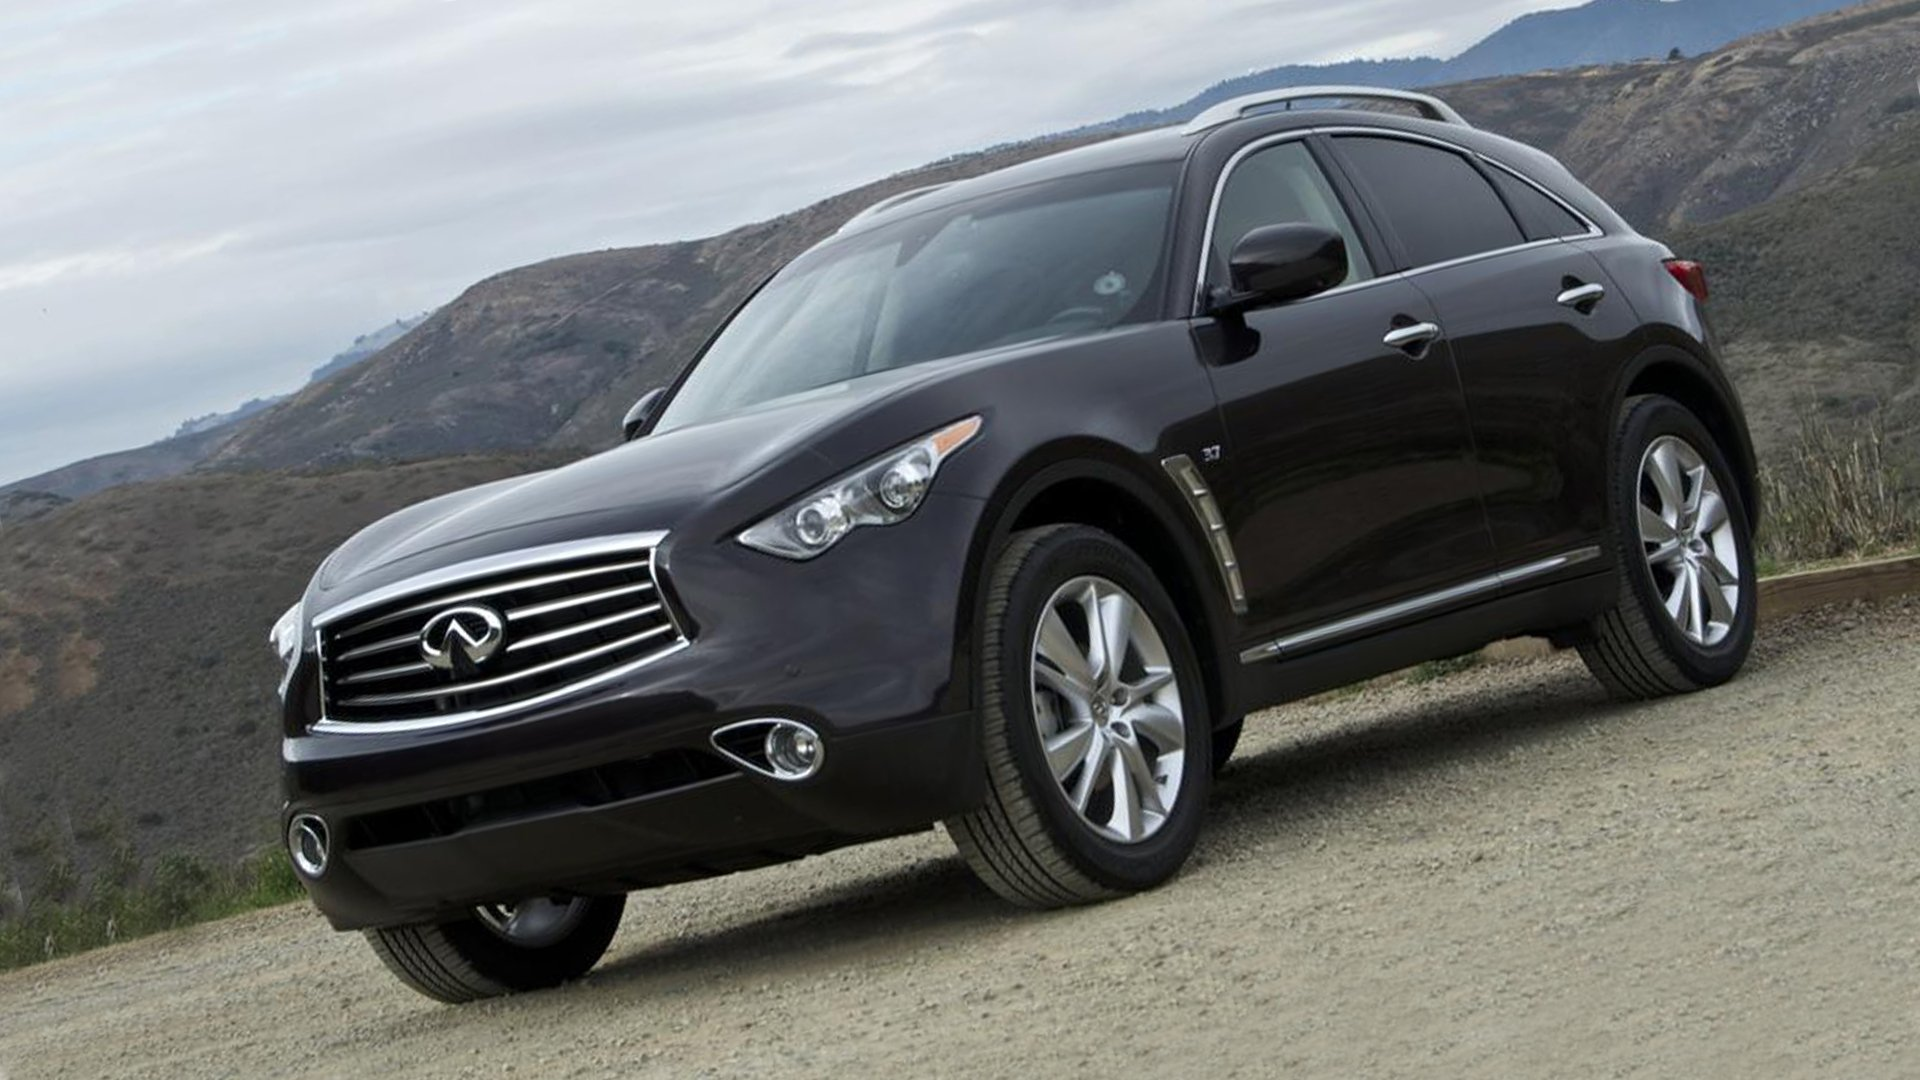 New Infiniti QX70 Prototype Specs HD